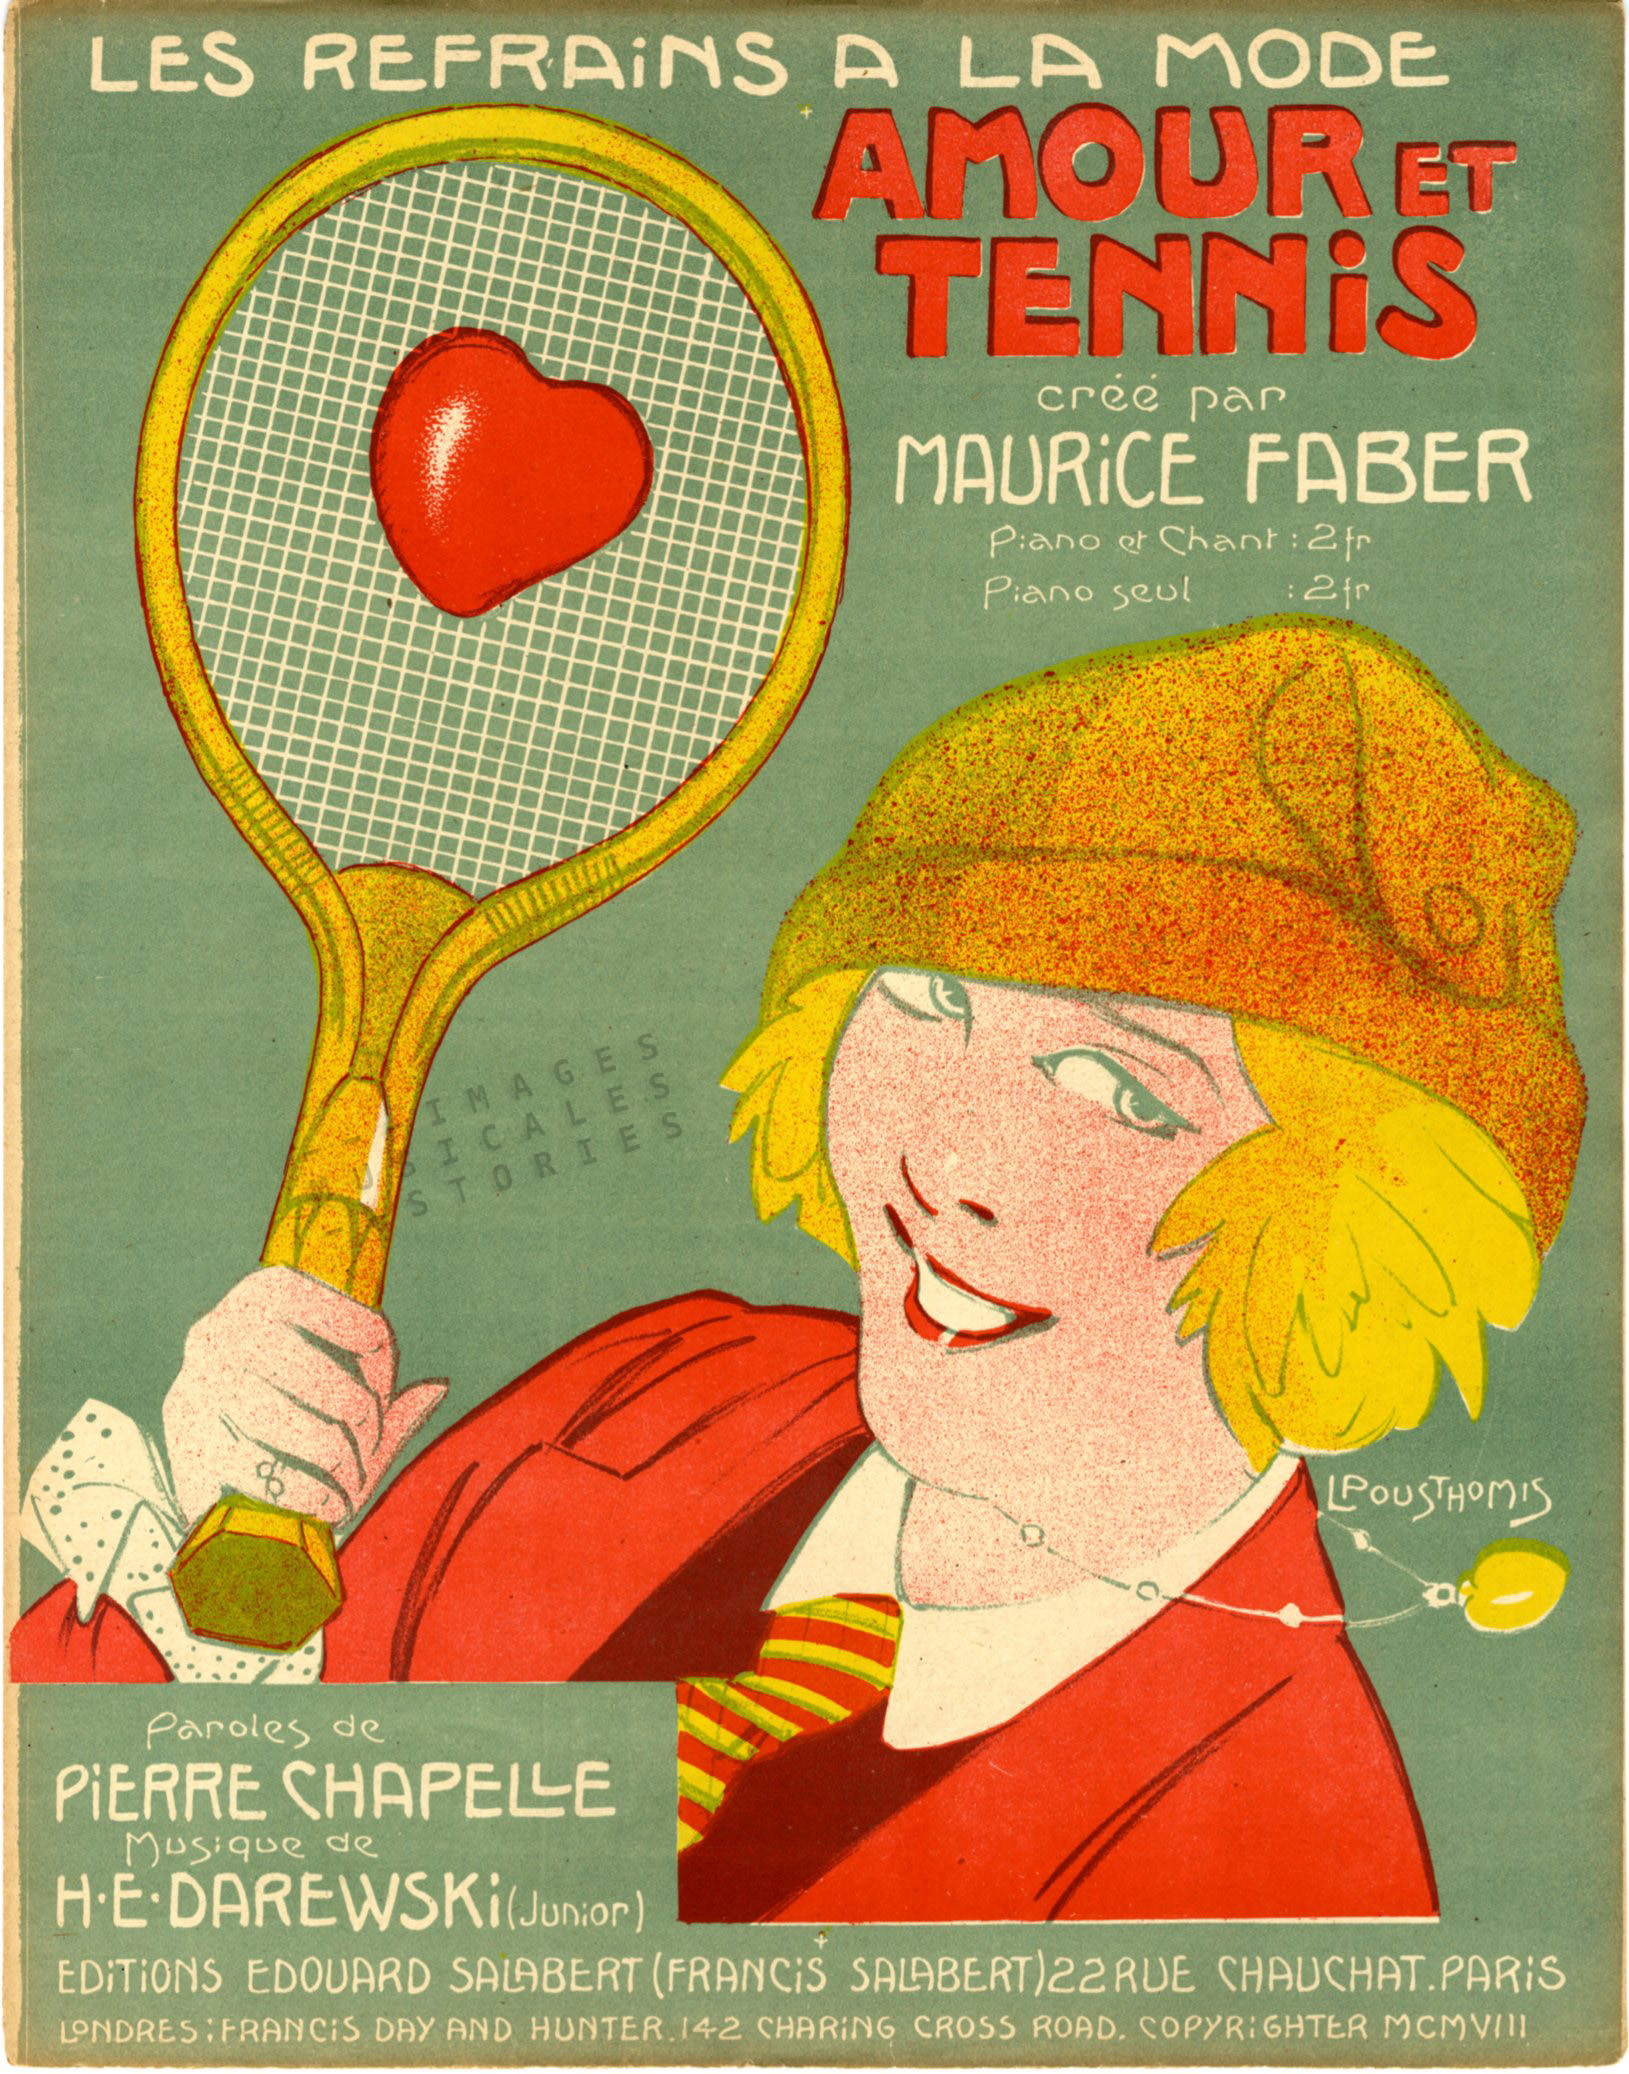 'Amour et Tennis' sheet music cover illustrated by Pousthomis